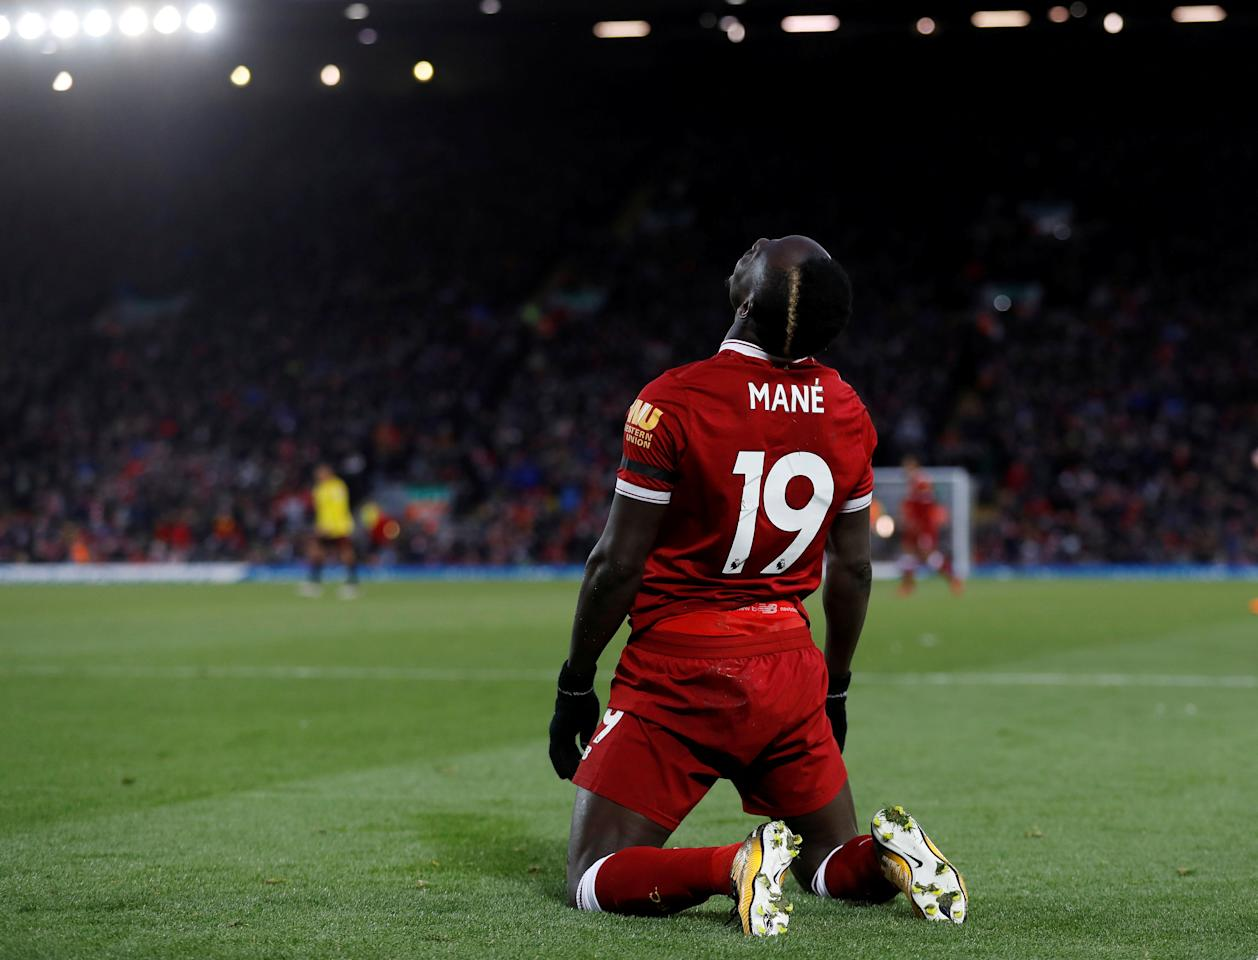 """Soccer Football - Premier League - Liverpool vs Watford - Anfield, Liverpool, Britain - March 17, 2018   Liverpool's Sadio Mane    Action Images via Reuters/Lee Smith    EDITORIAL USE ONLY. No use with unauthorized audio, video, data, fixture lists, club/league logos or """"live"""" services. Online in-match use limited to 75 images, no video emulation. No use in betting, games or single club/league/player publications.  Please contact your account representative for further details.     TPX IMAGES OF THE DAY"""